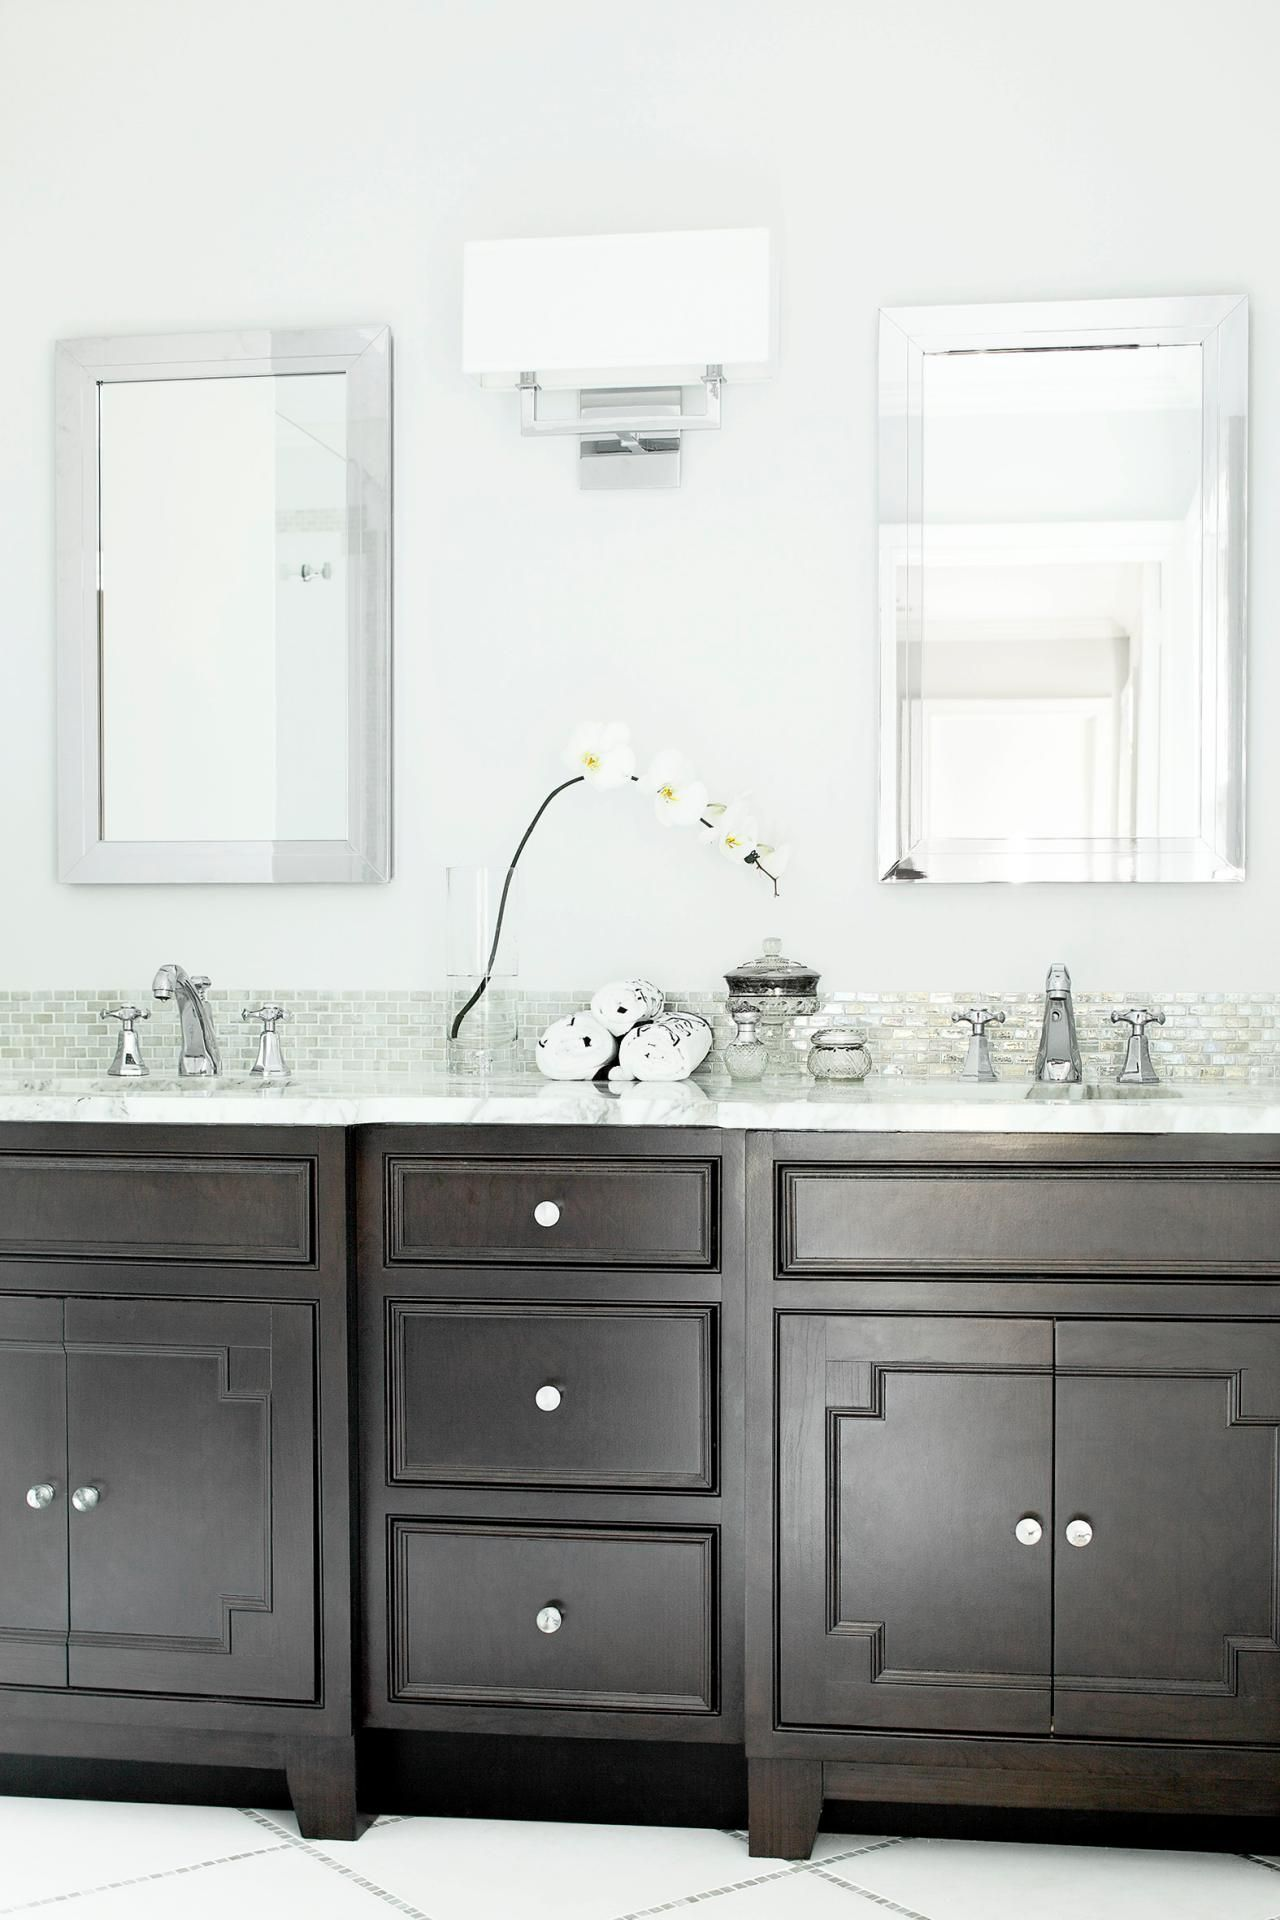 A dark wood vanity creates contrast against bright white walls in